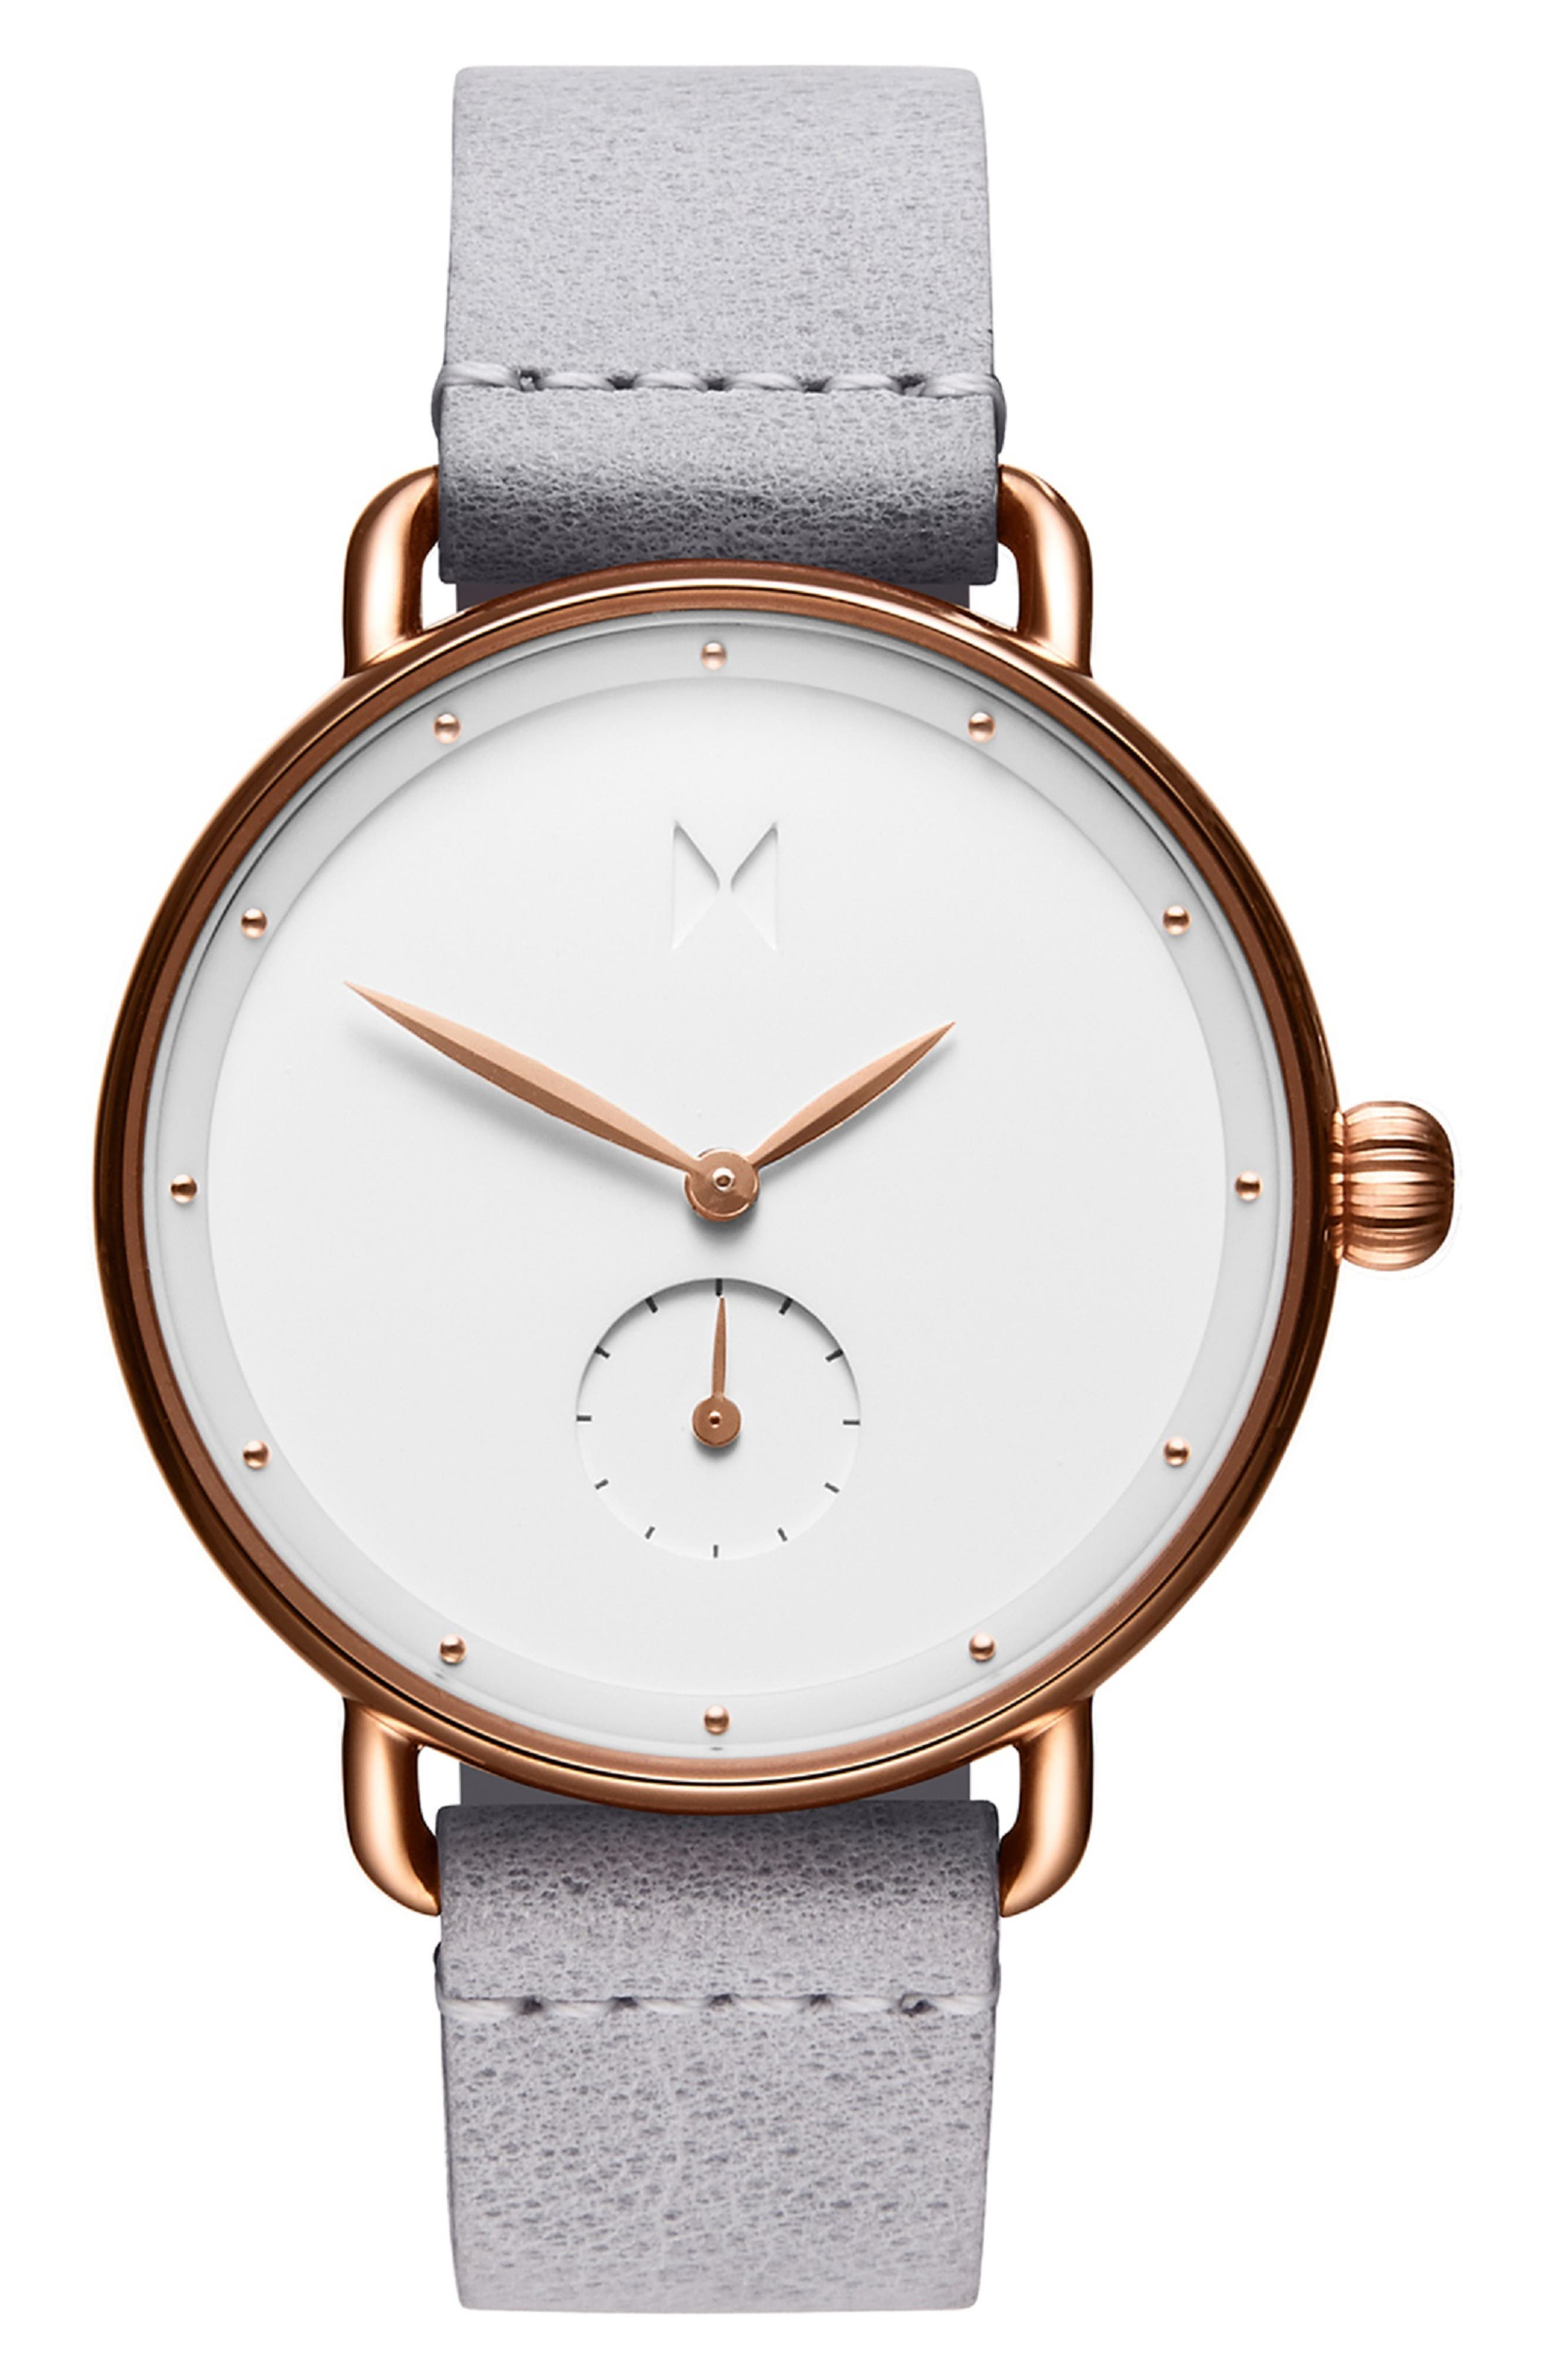 MVMT, Bloom Leather Strap Watch, 36mm, Main thumbnail 1, color, GREY/ WHITE/ ROSE GOLD